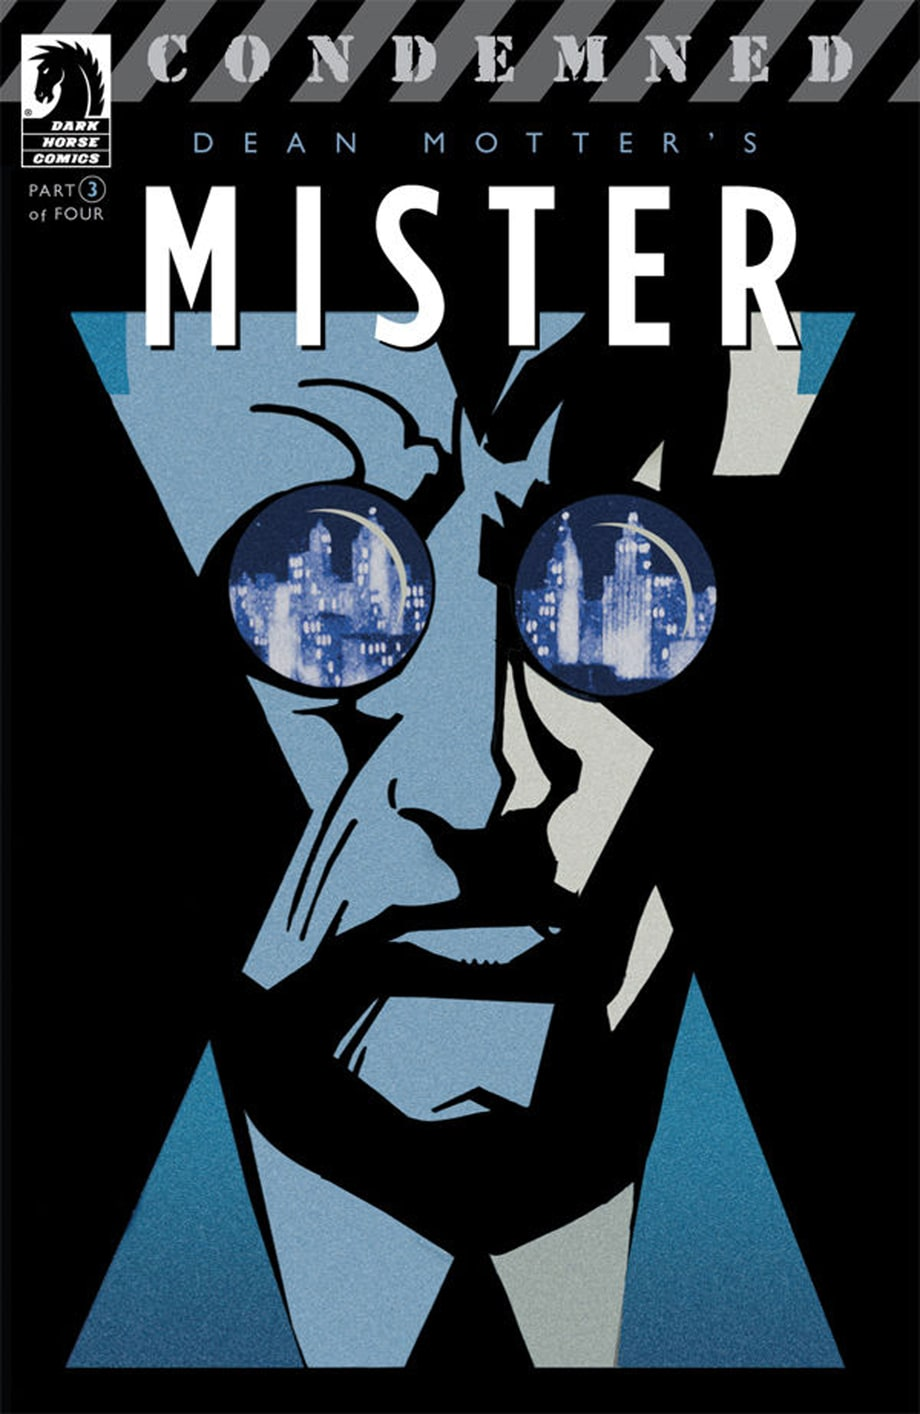 'Mister X,' Dean Motter and Various